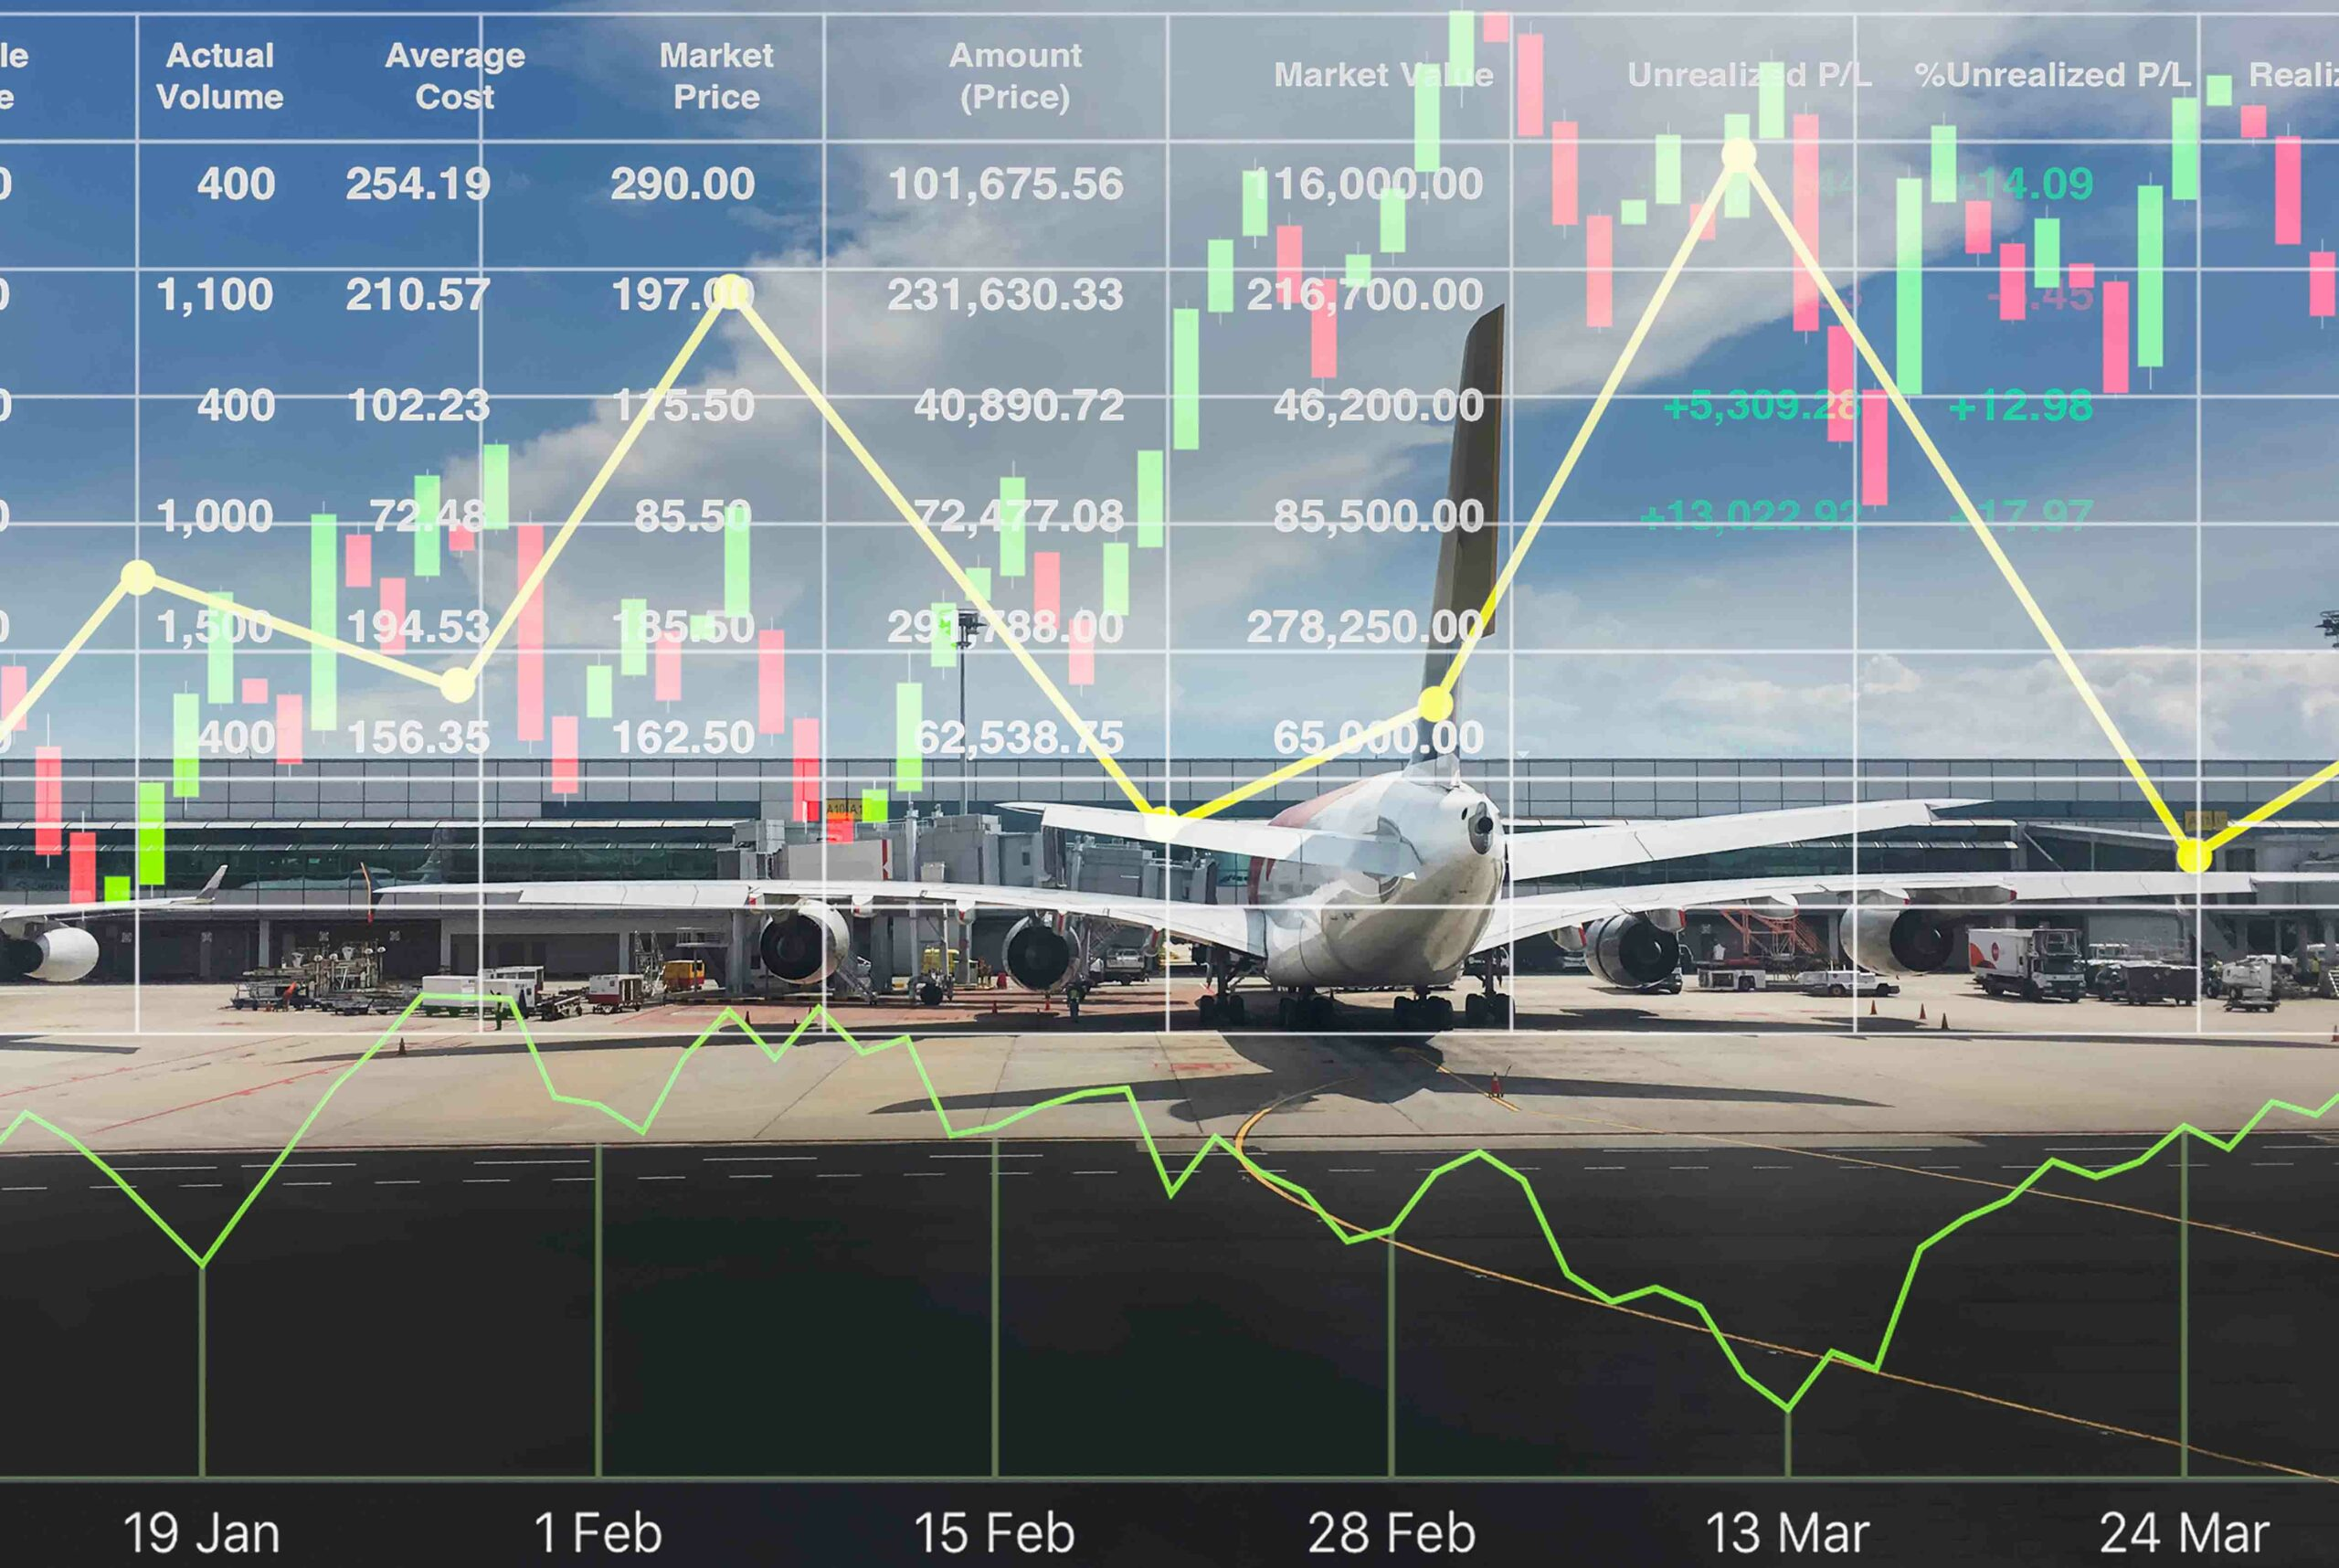 Cumulative of $201Billion loses for airline industry but losses are reducing. Alfa Logistic Family